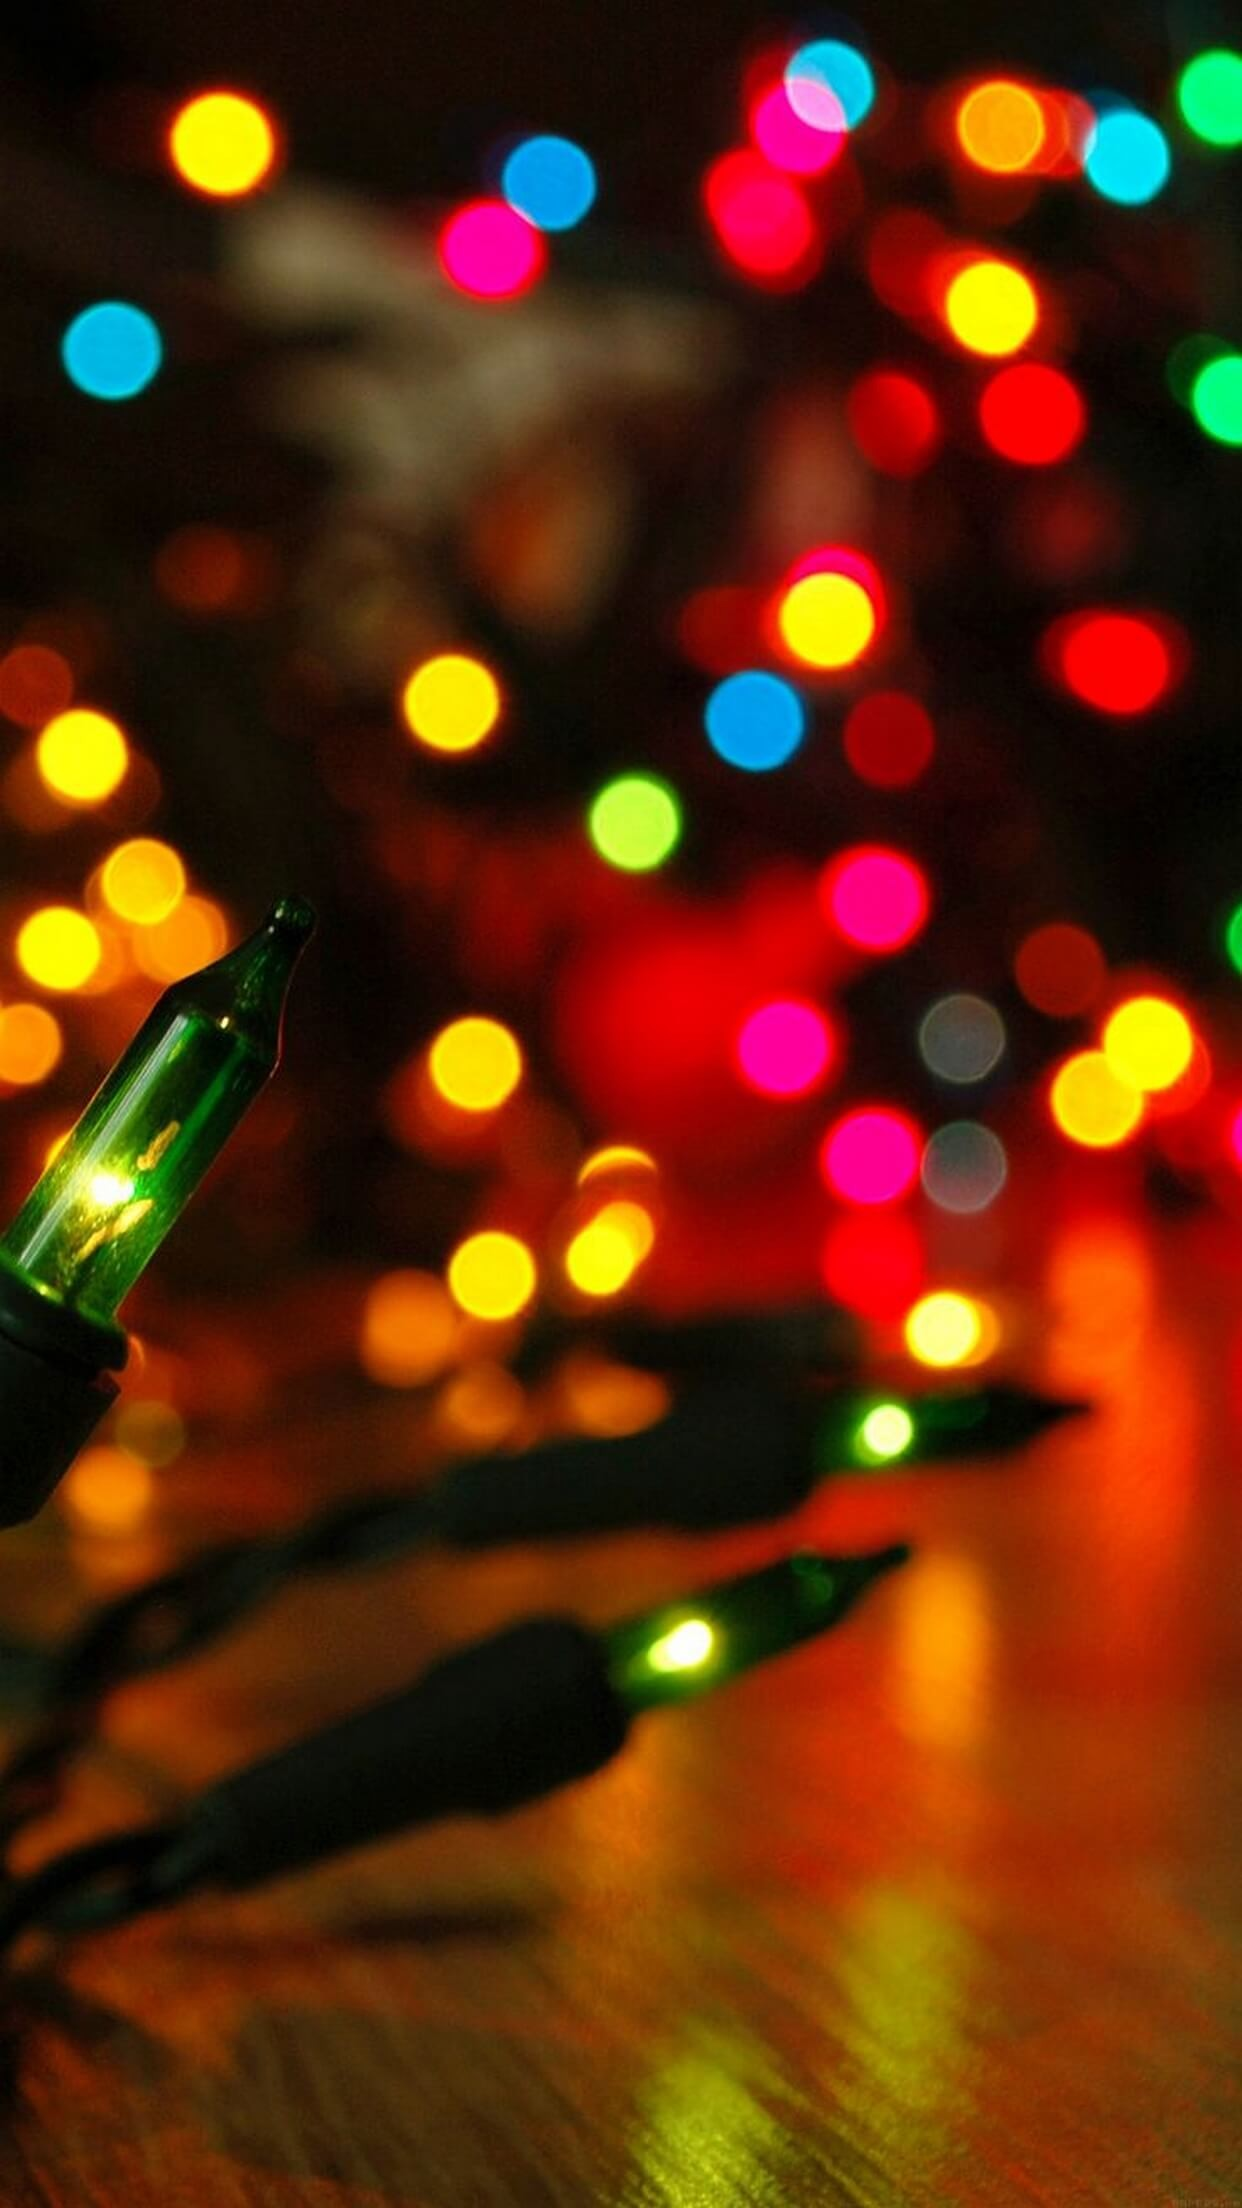 1492254 free download christmas lights iphone wallpaper